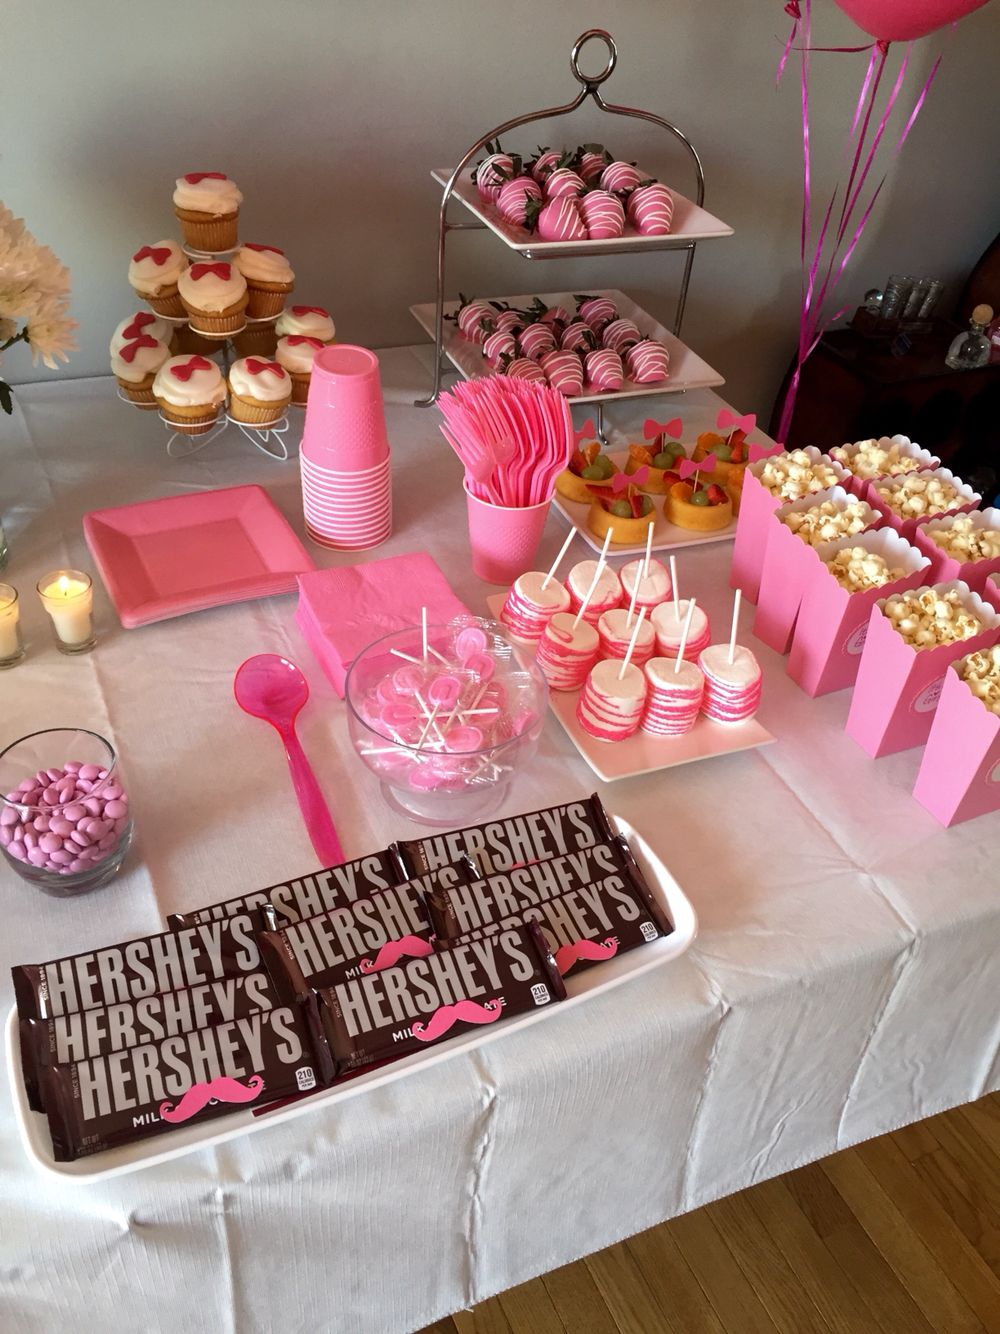 Girls Side Of The Snack Table Gender Reveal Boy Or Girl Pink Baby Shower  Bows Mustaches